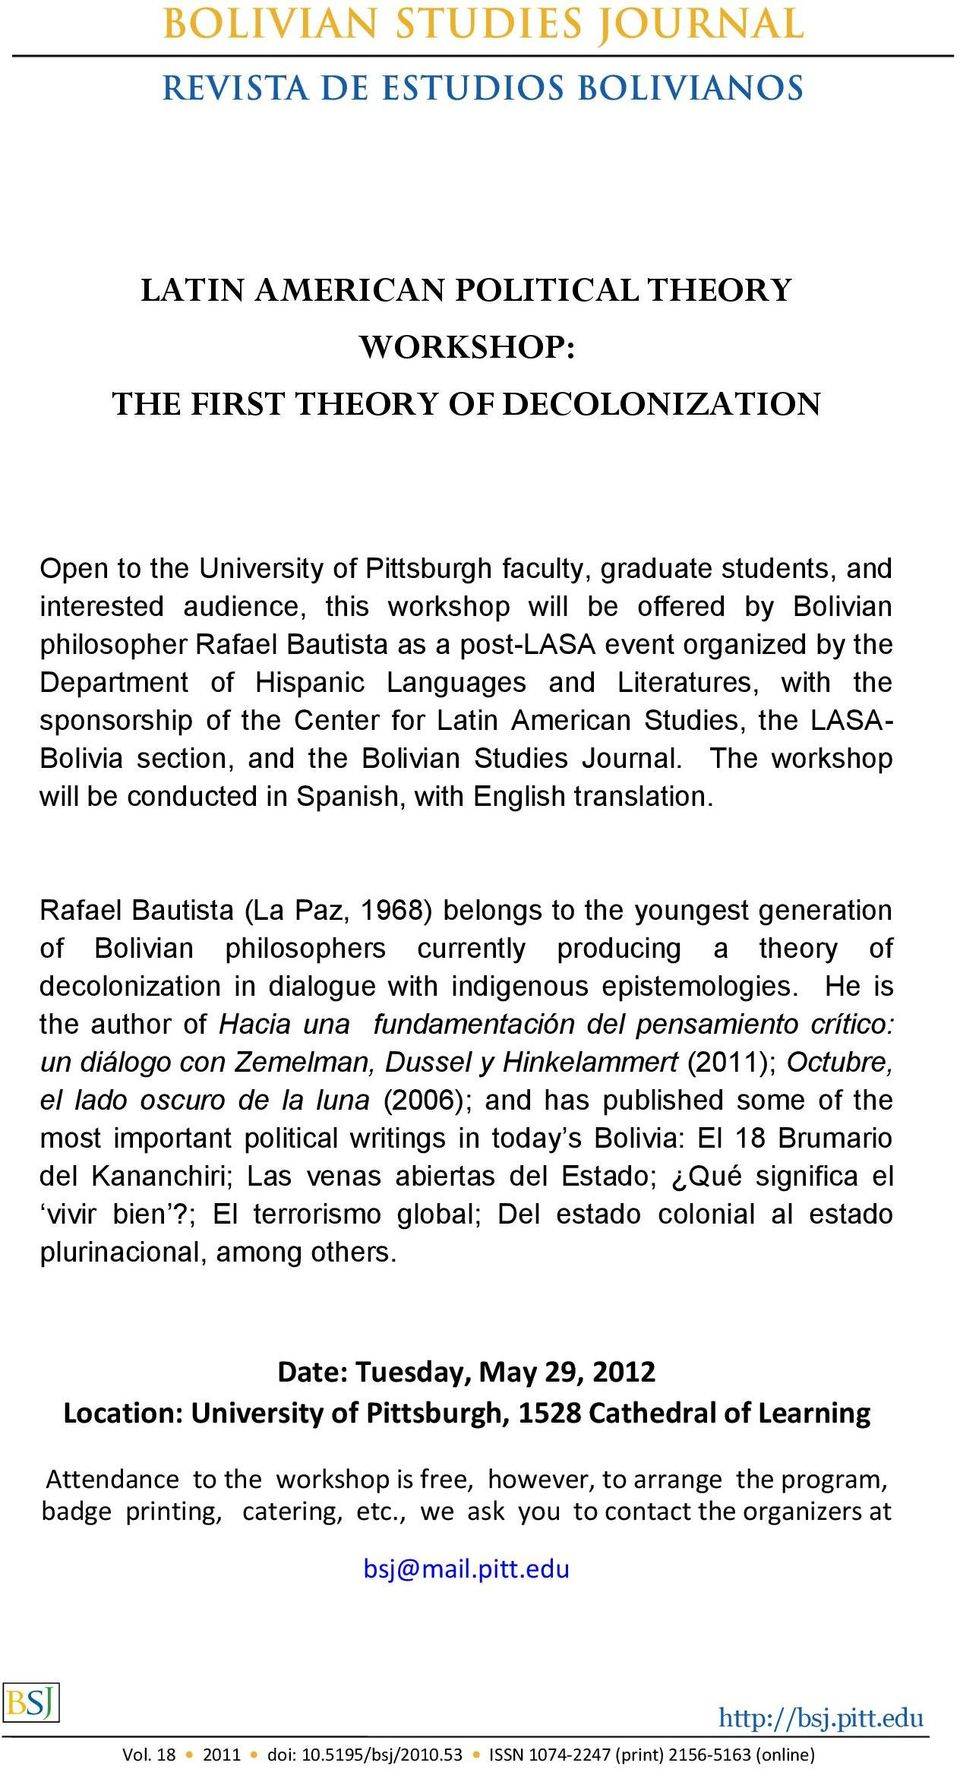 Bolivia section, and the Bolivian Studies Journal. The workshop will be conducted in Spanish, with English translation.